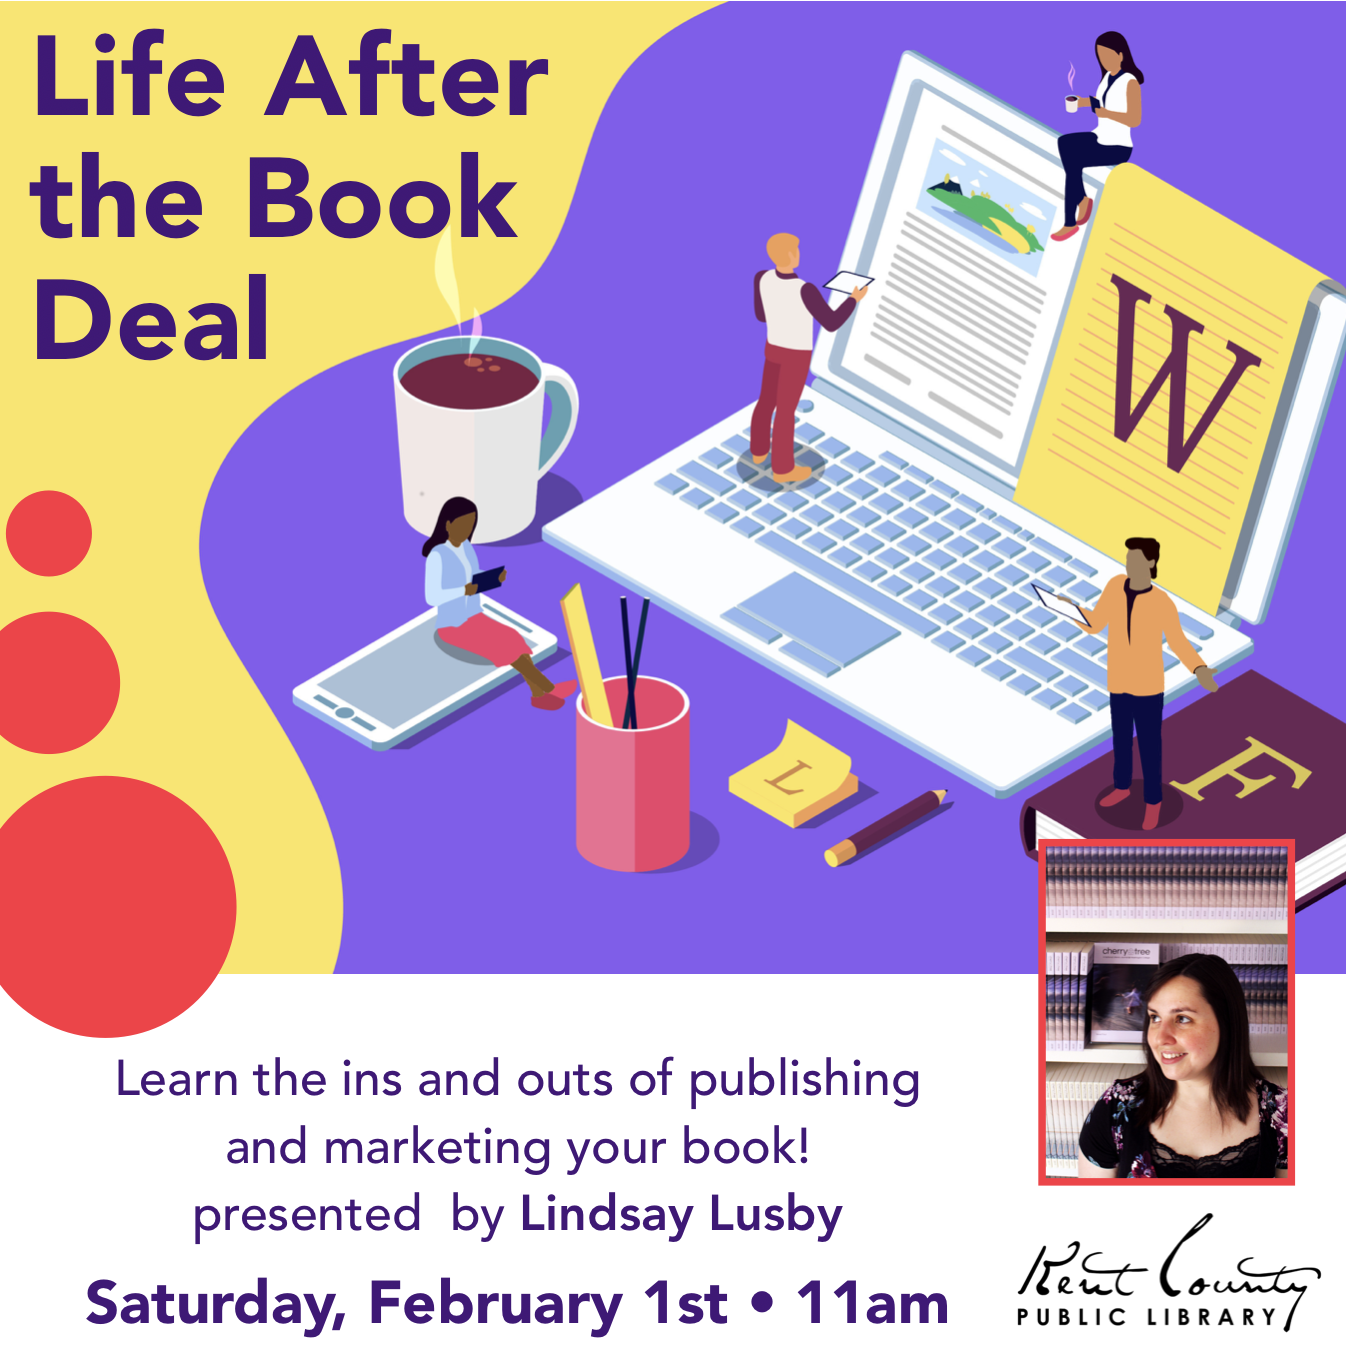 Life After the Book Deal: Publishing & Marketing Your Book